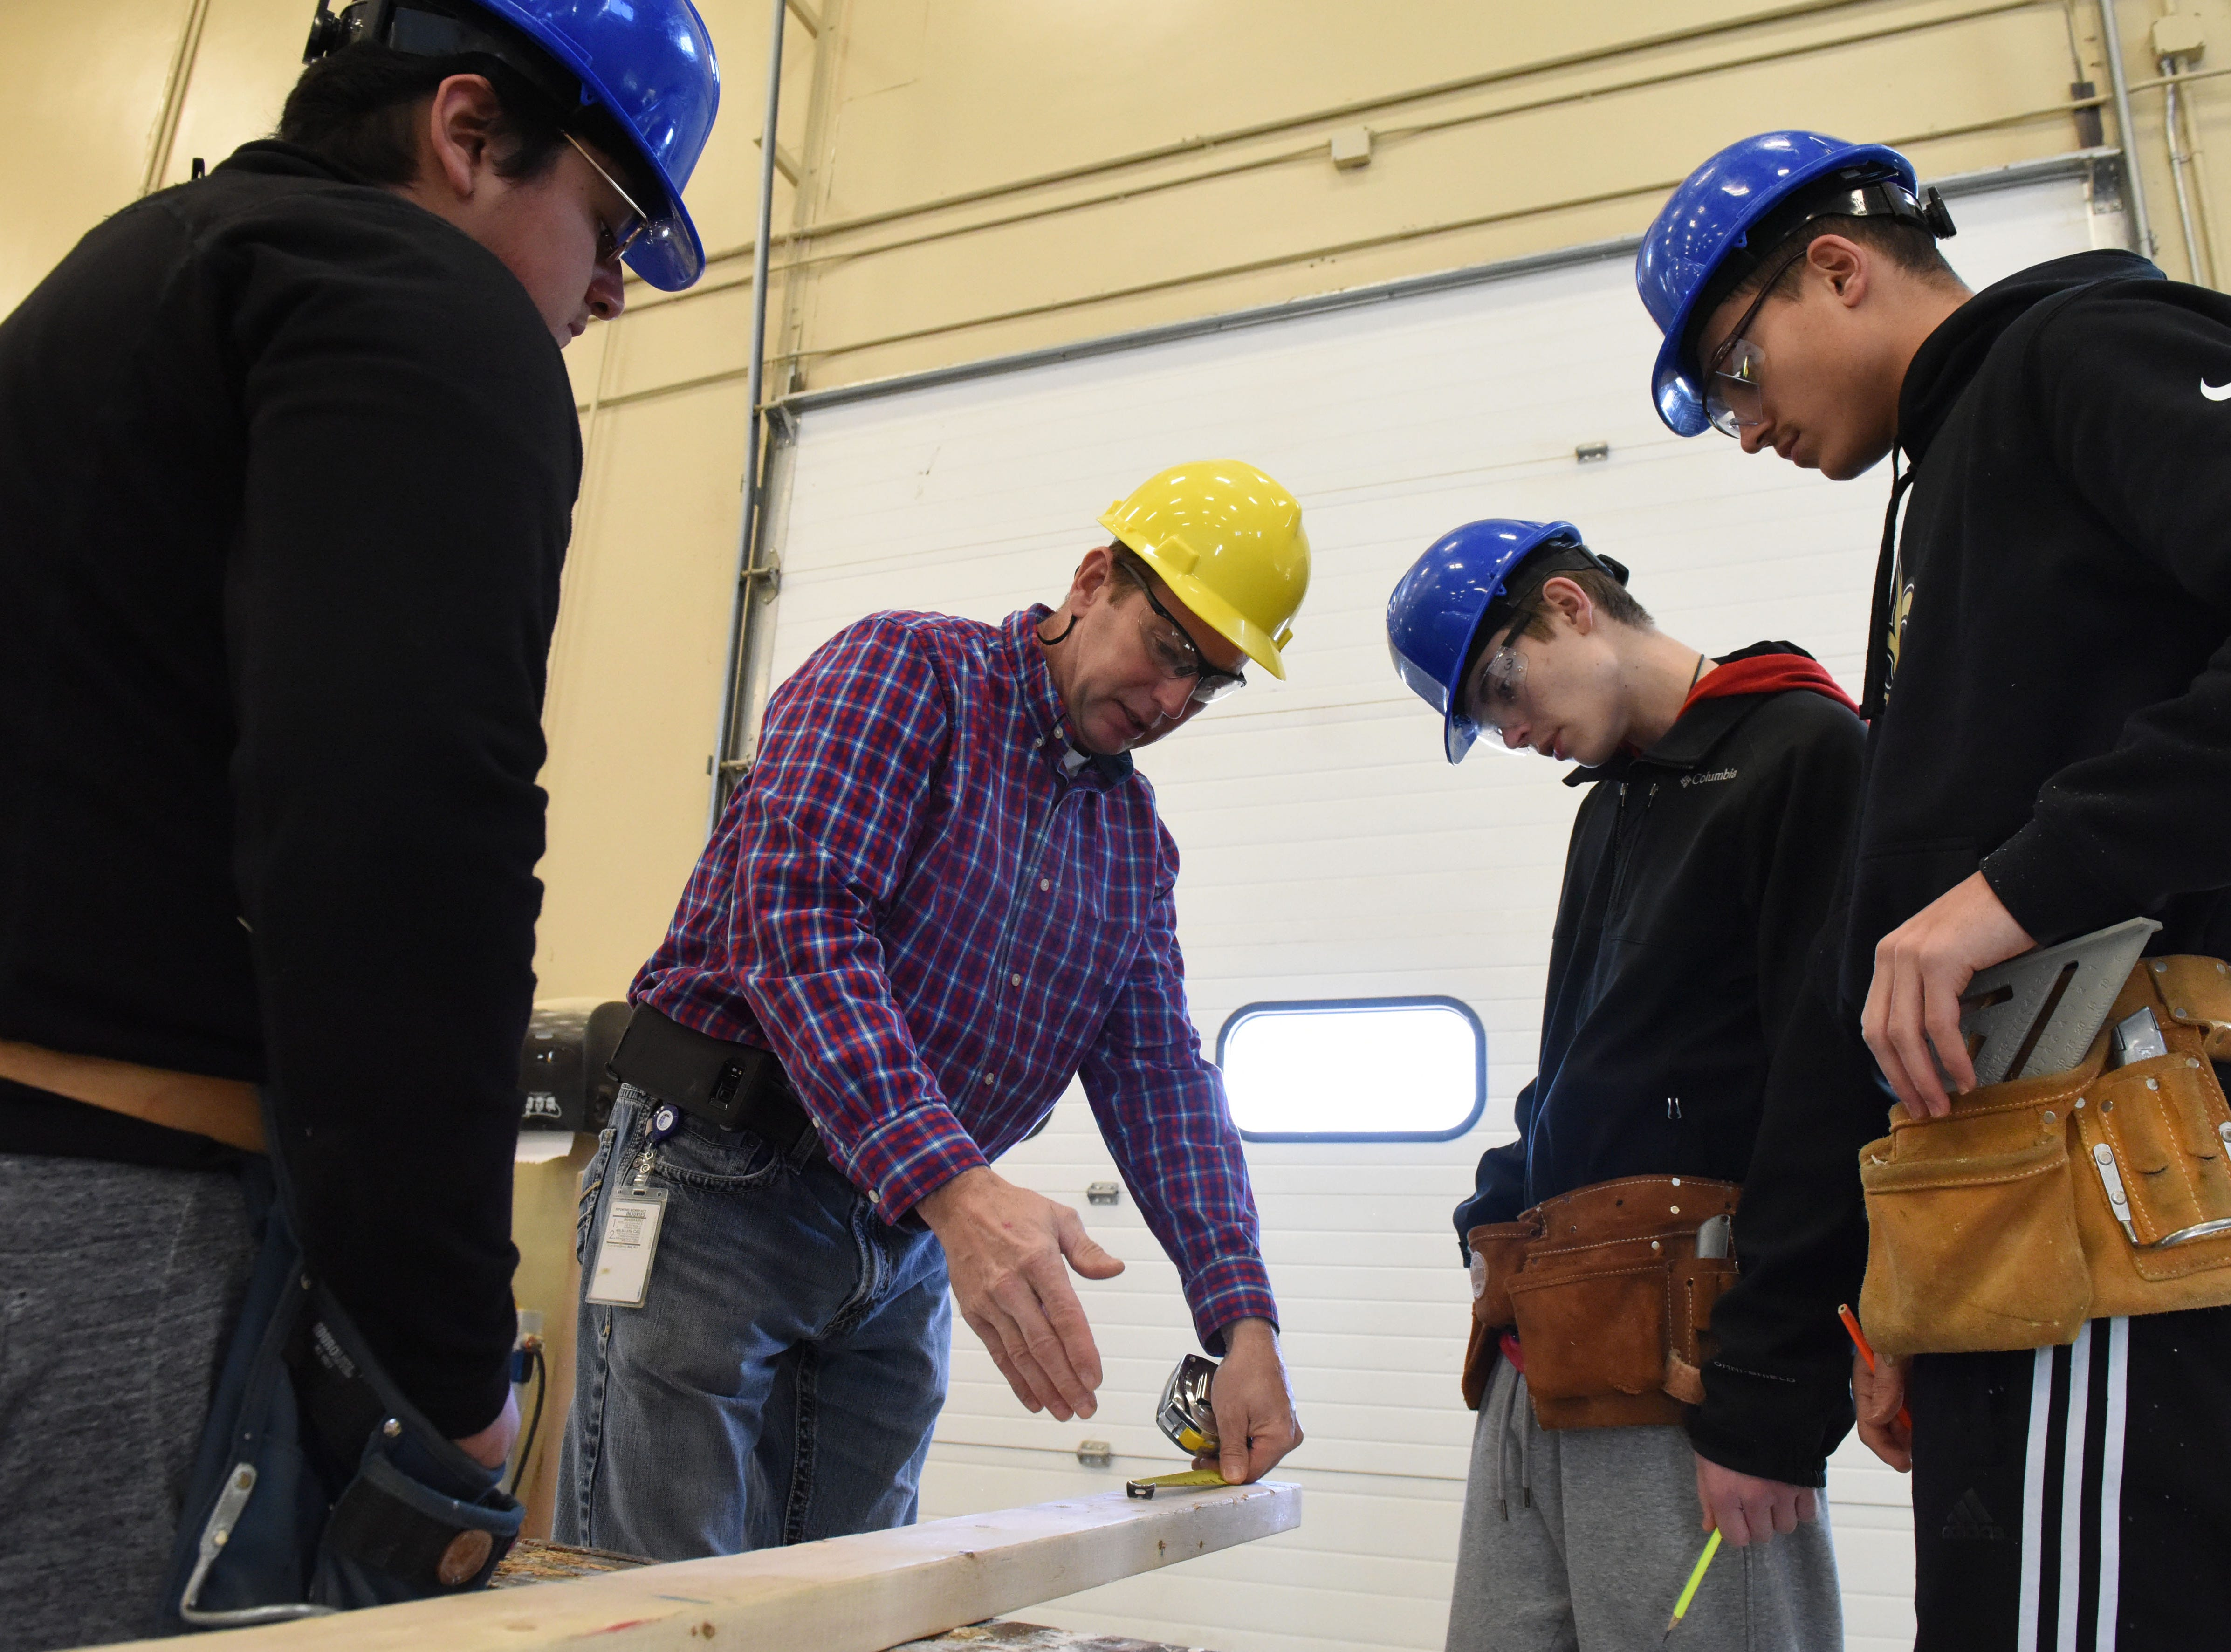 Nick Opdahl instructs his students, Alan Navarro, left, Douglas Wells and Colby Tople during carpentry class at Career and Technical Education Academy, Monday, Jan. 7, 2019 in Sioux Falls, S.D.